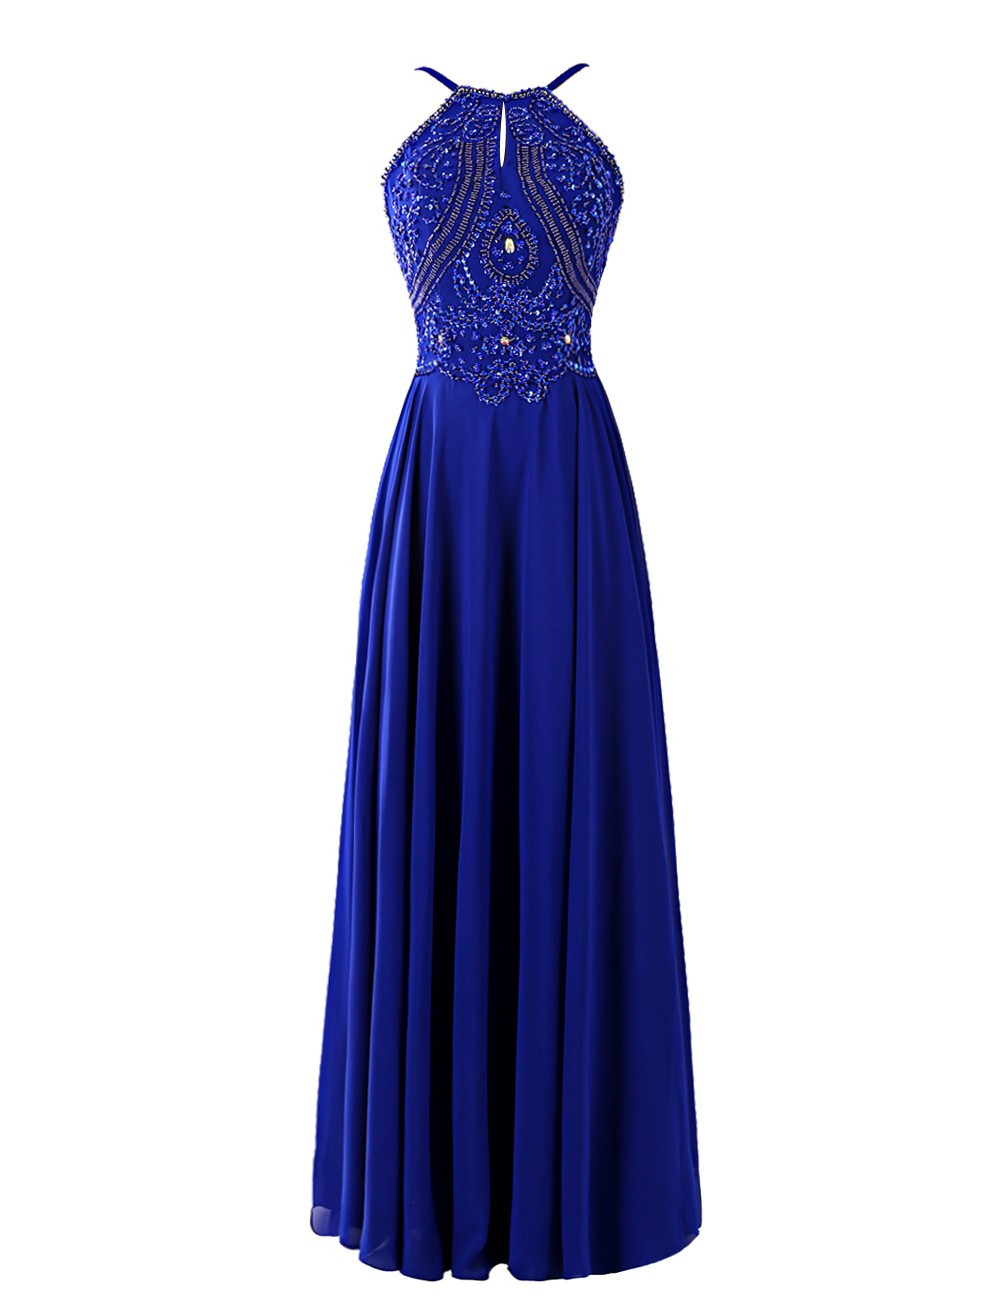 Sexy Royal Blue Chiffon Strapless Formal Dresses With Jewel-embellished Bodice , Long Elegant Prom Dress